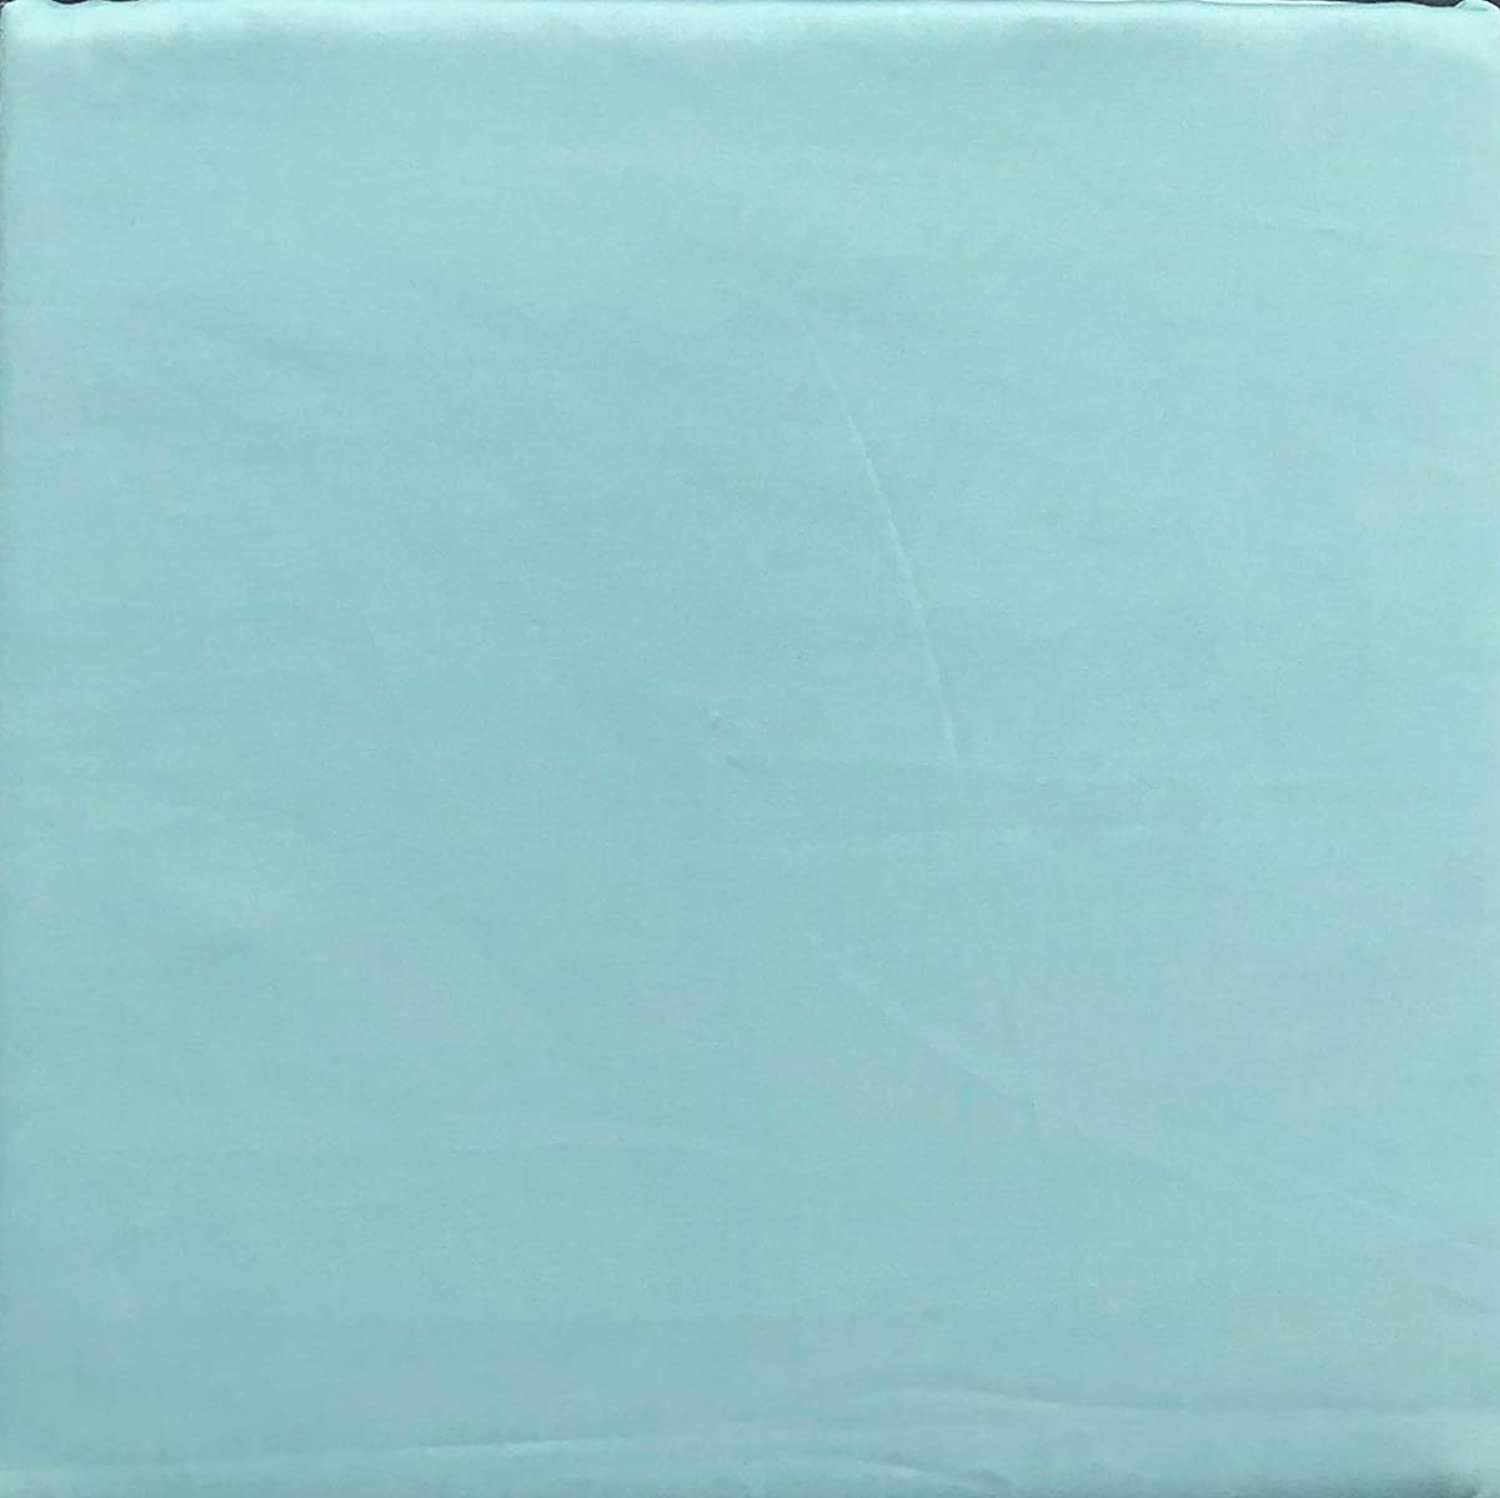 Max Studio Solid Turquoise bluee Sheet Set Extra Deep Pockets 300 Thread Count 100% Cotton Luxury (King)